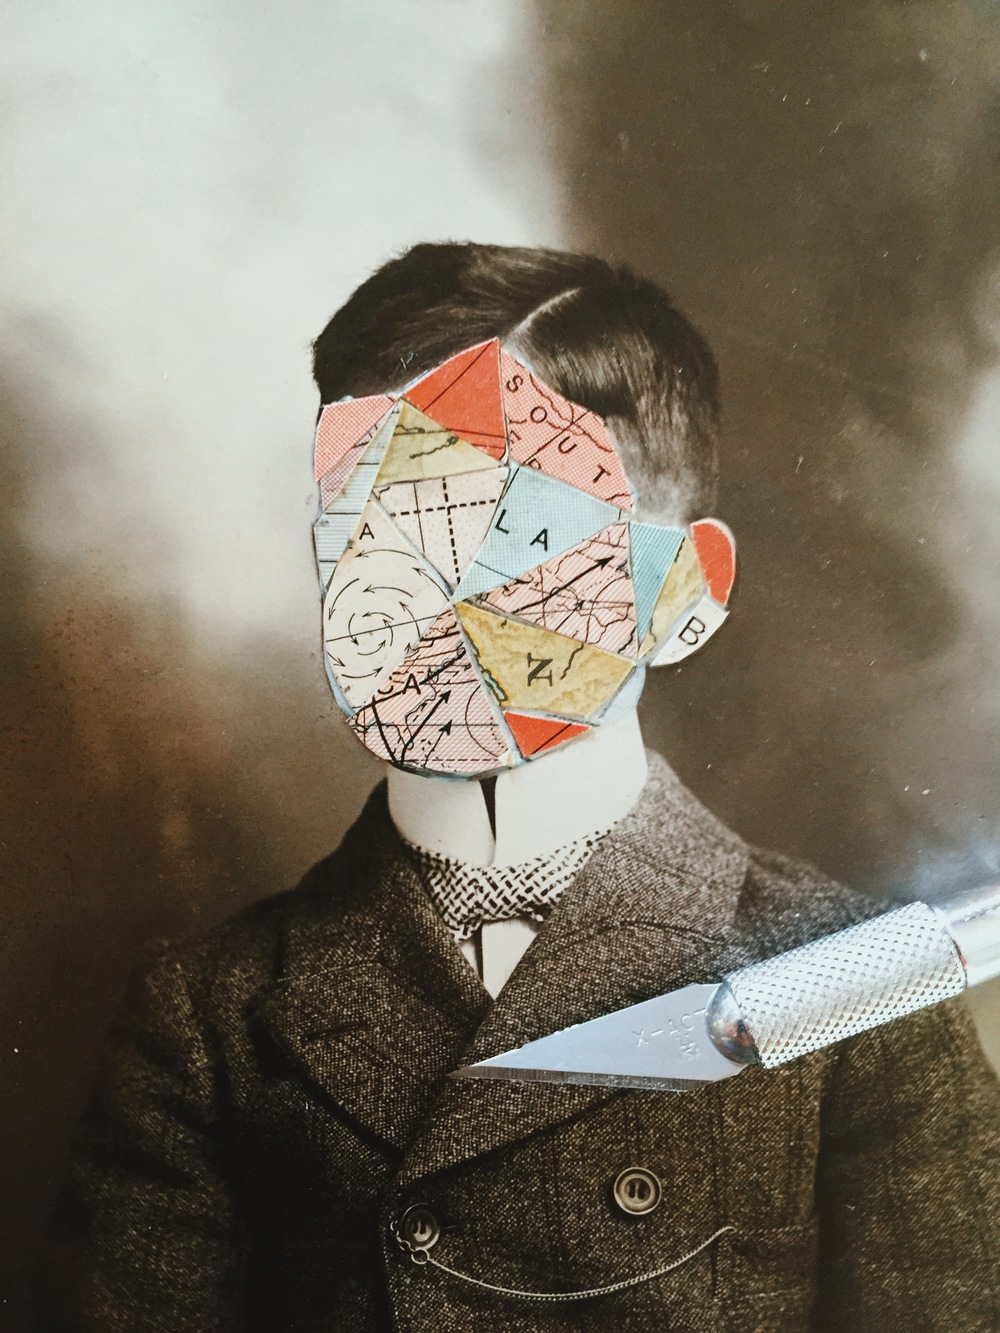 Collage work by Kyle Steed